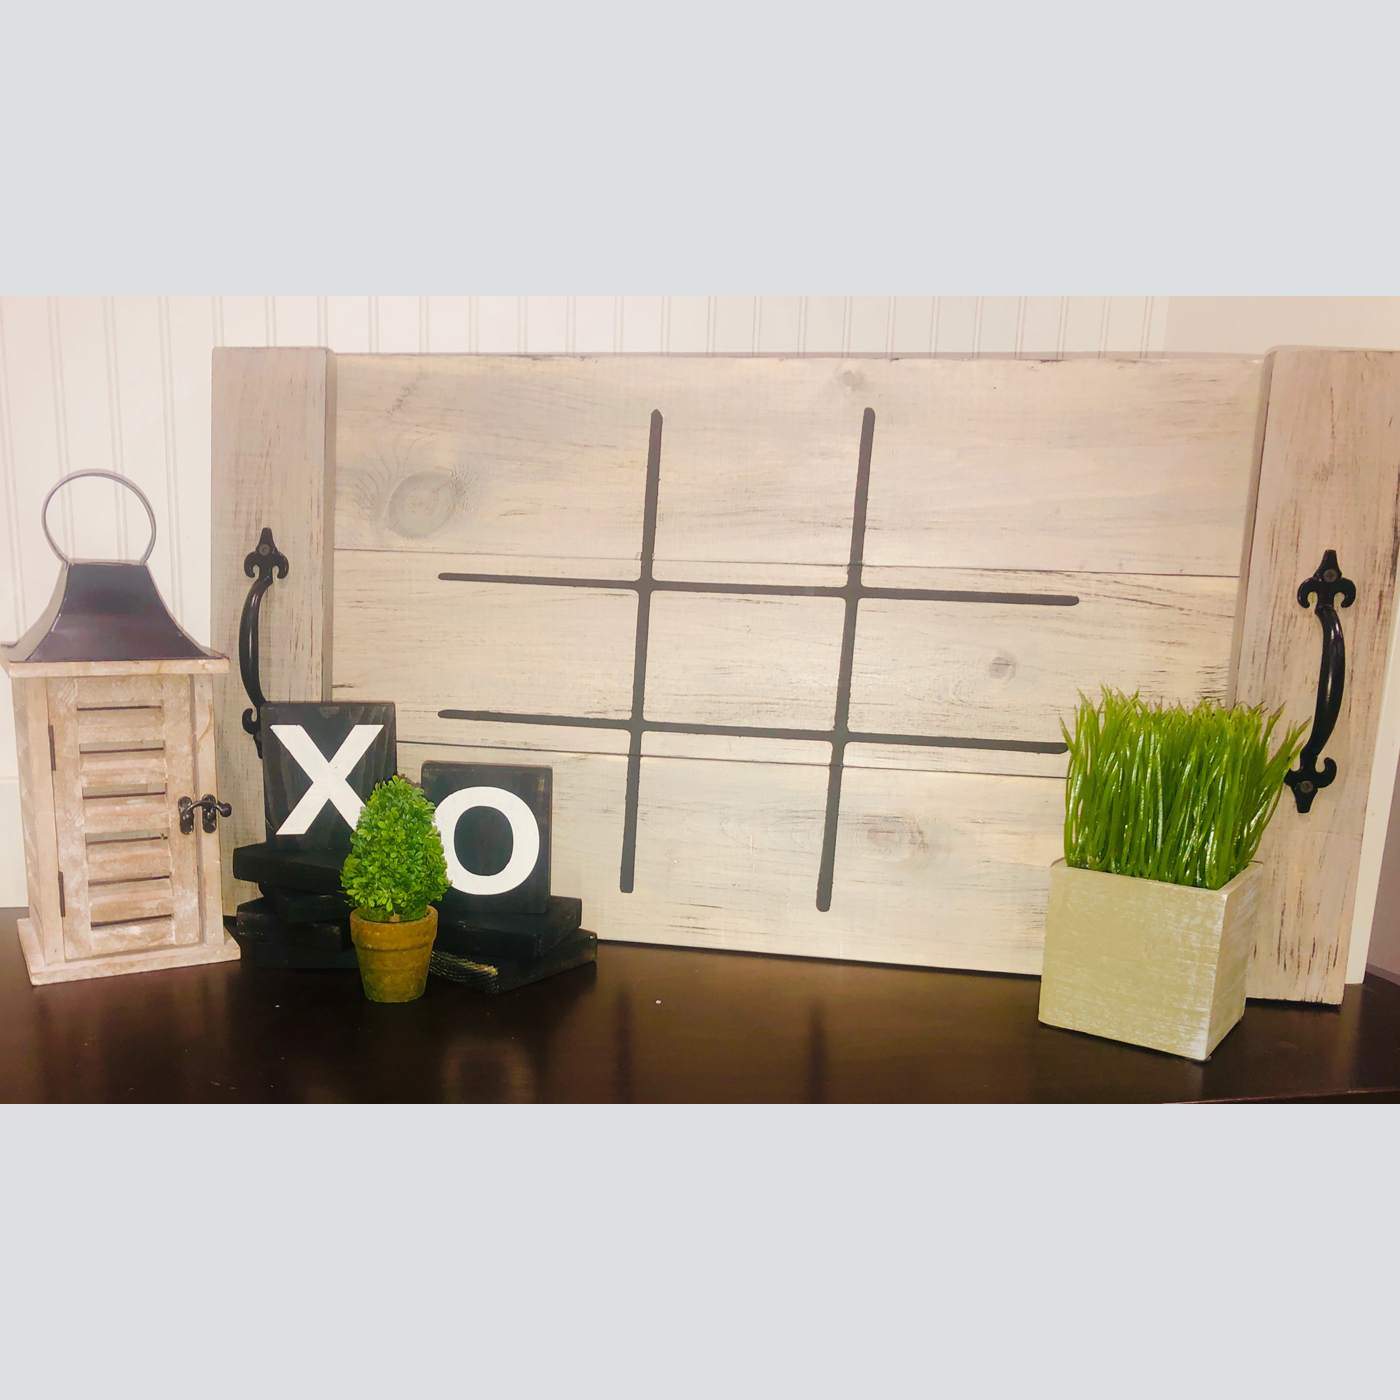 Tic Tac Toe DIY wood sign outdoor games